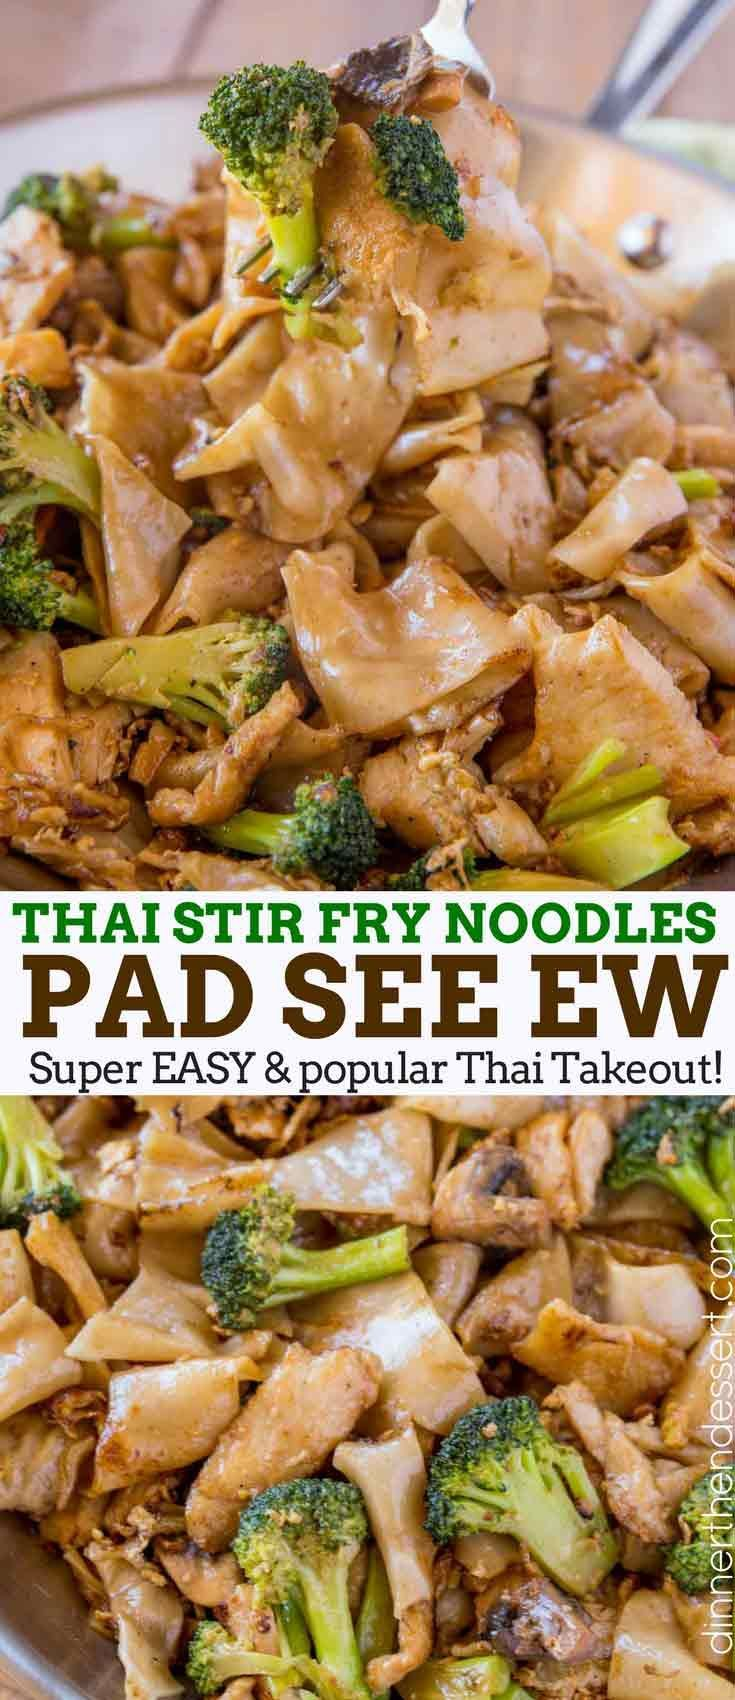 Pad See Ew is a Thai Stir Fry Noodle Dish made with extra thick rice noodles in a sweet and savory sauce made from soy sauce, fish sauce, oyster sauce and sugar in less than 30 minutes. | #thai #thaifood #padthai #easythairecipes #thainoodles #chickennoodles #dinnerthendessert #padseeew #asianfood #copycat #asiantakeout #mallfood #chicken #chickenrecipes #chinesefood #japanesefood